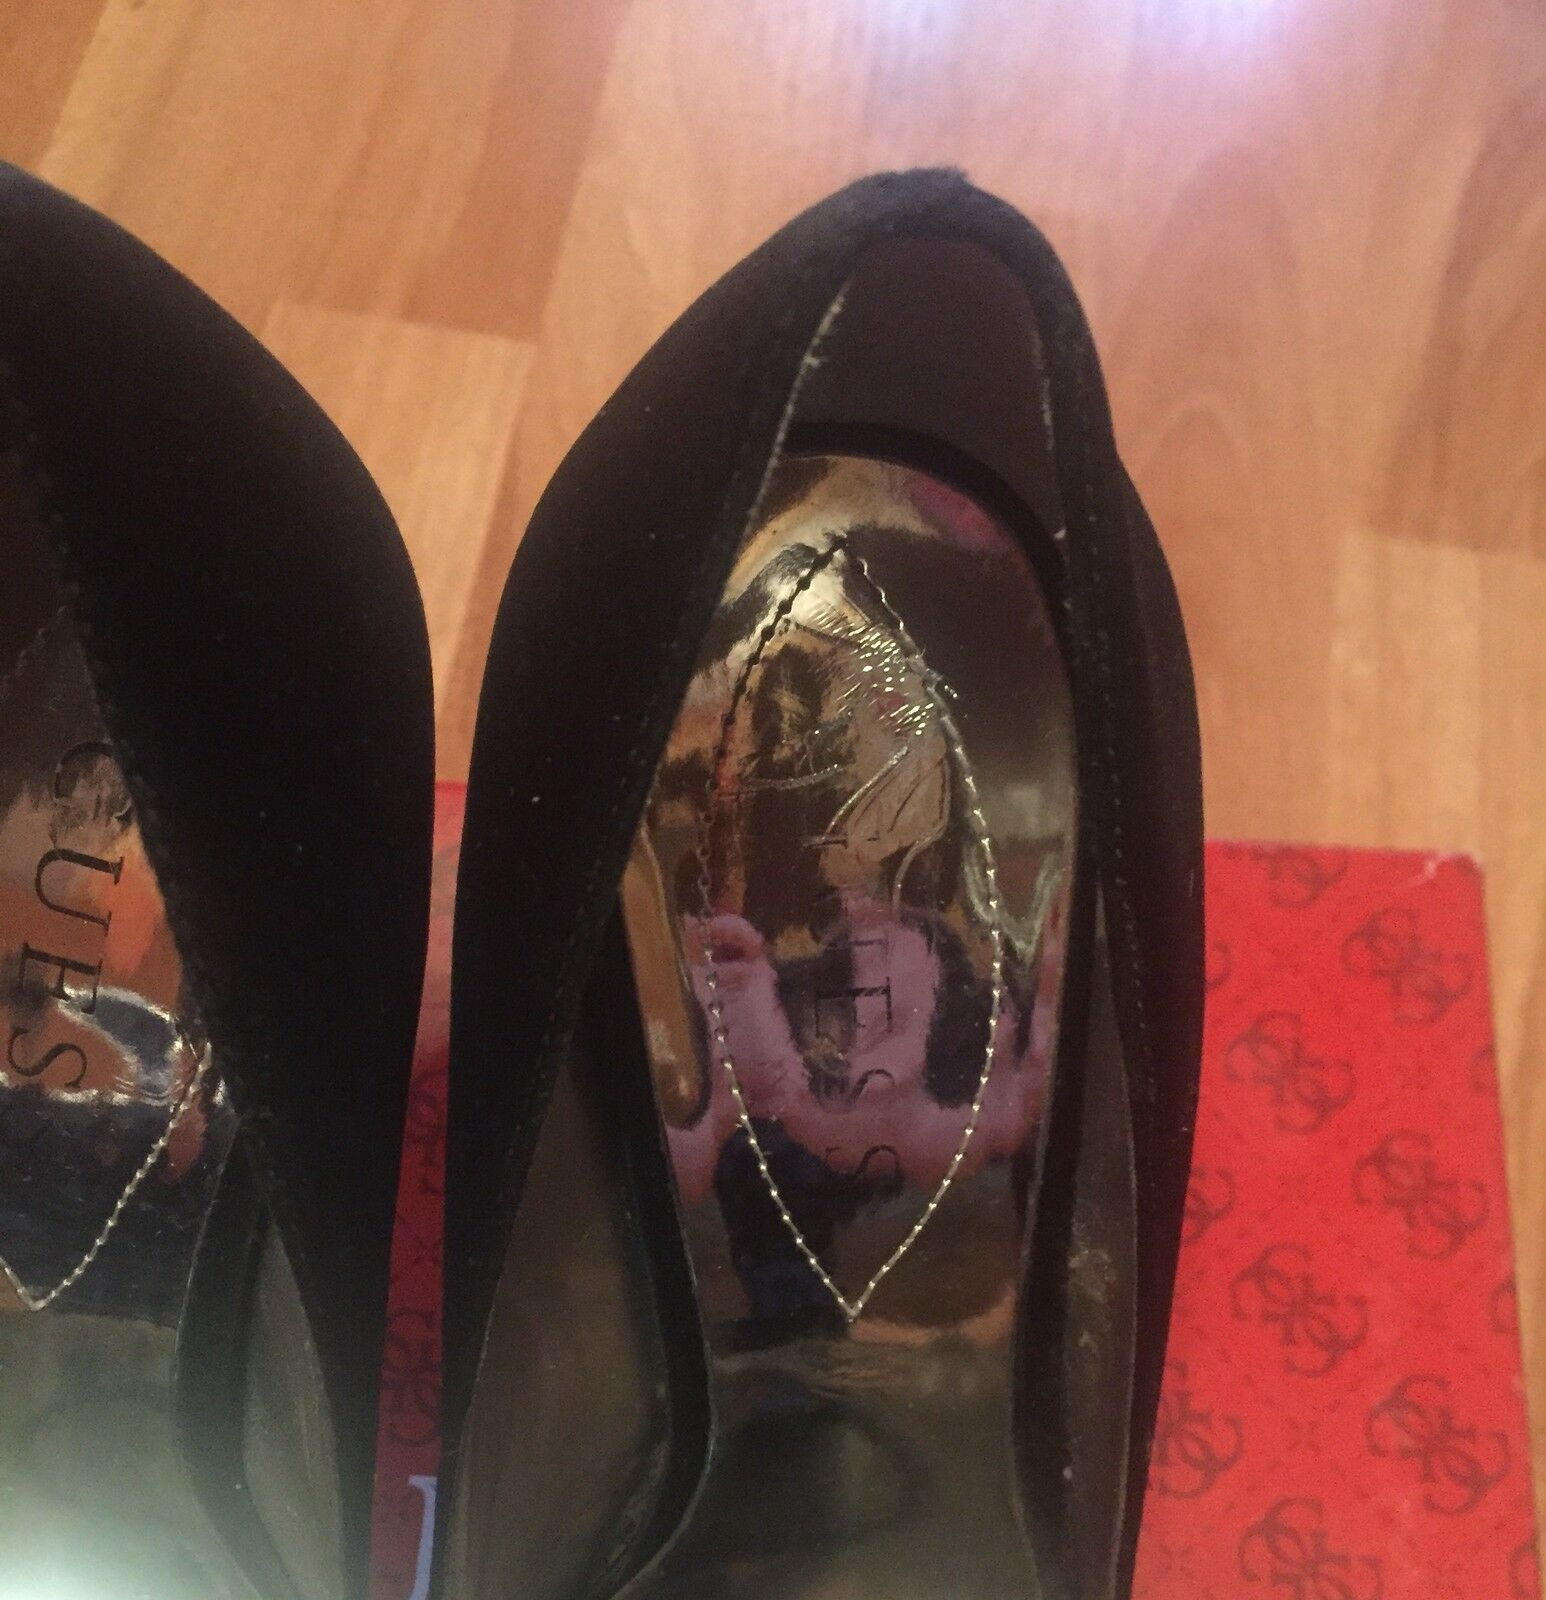 GUESS high heels Schuhes Satin Größe 36 uk 4 6M us 6M 4 in perfect condition 7dc2a4